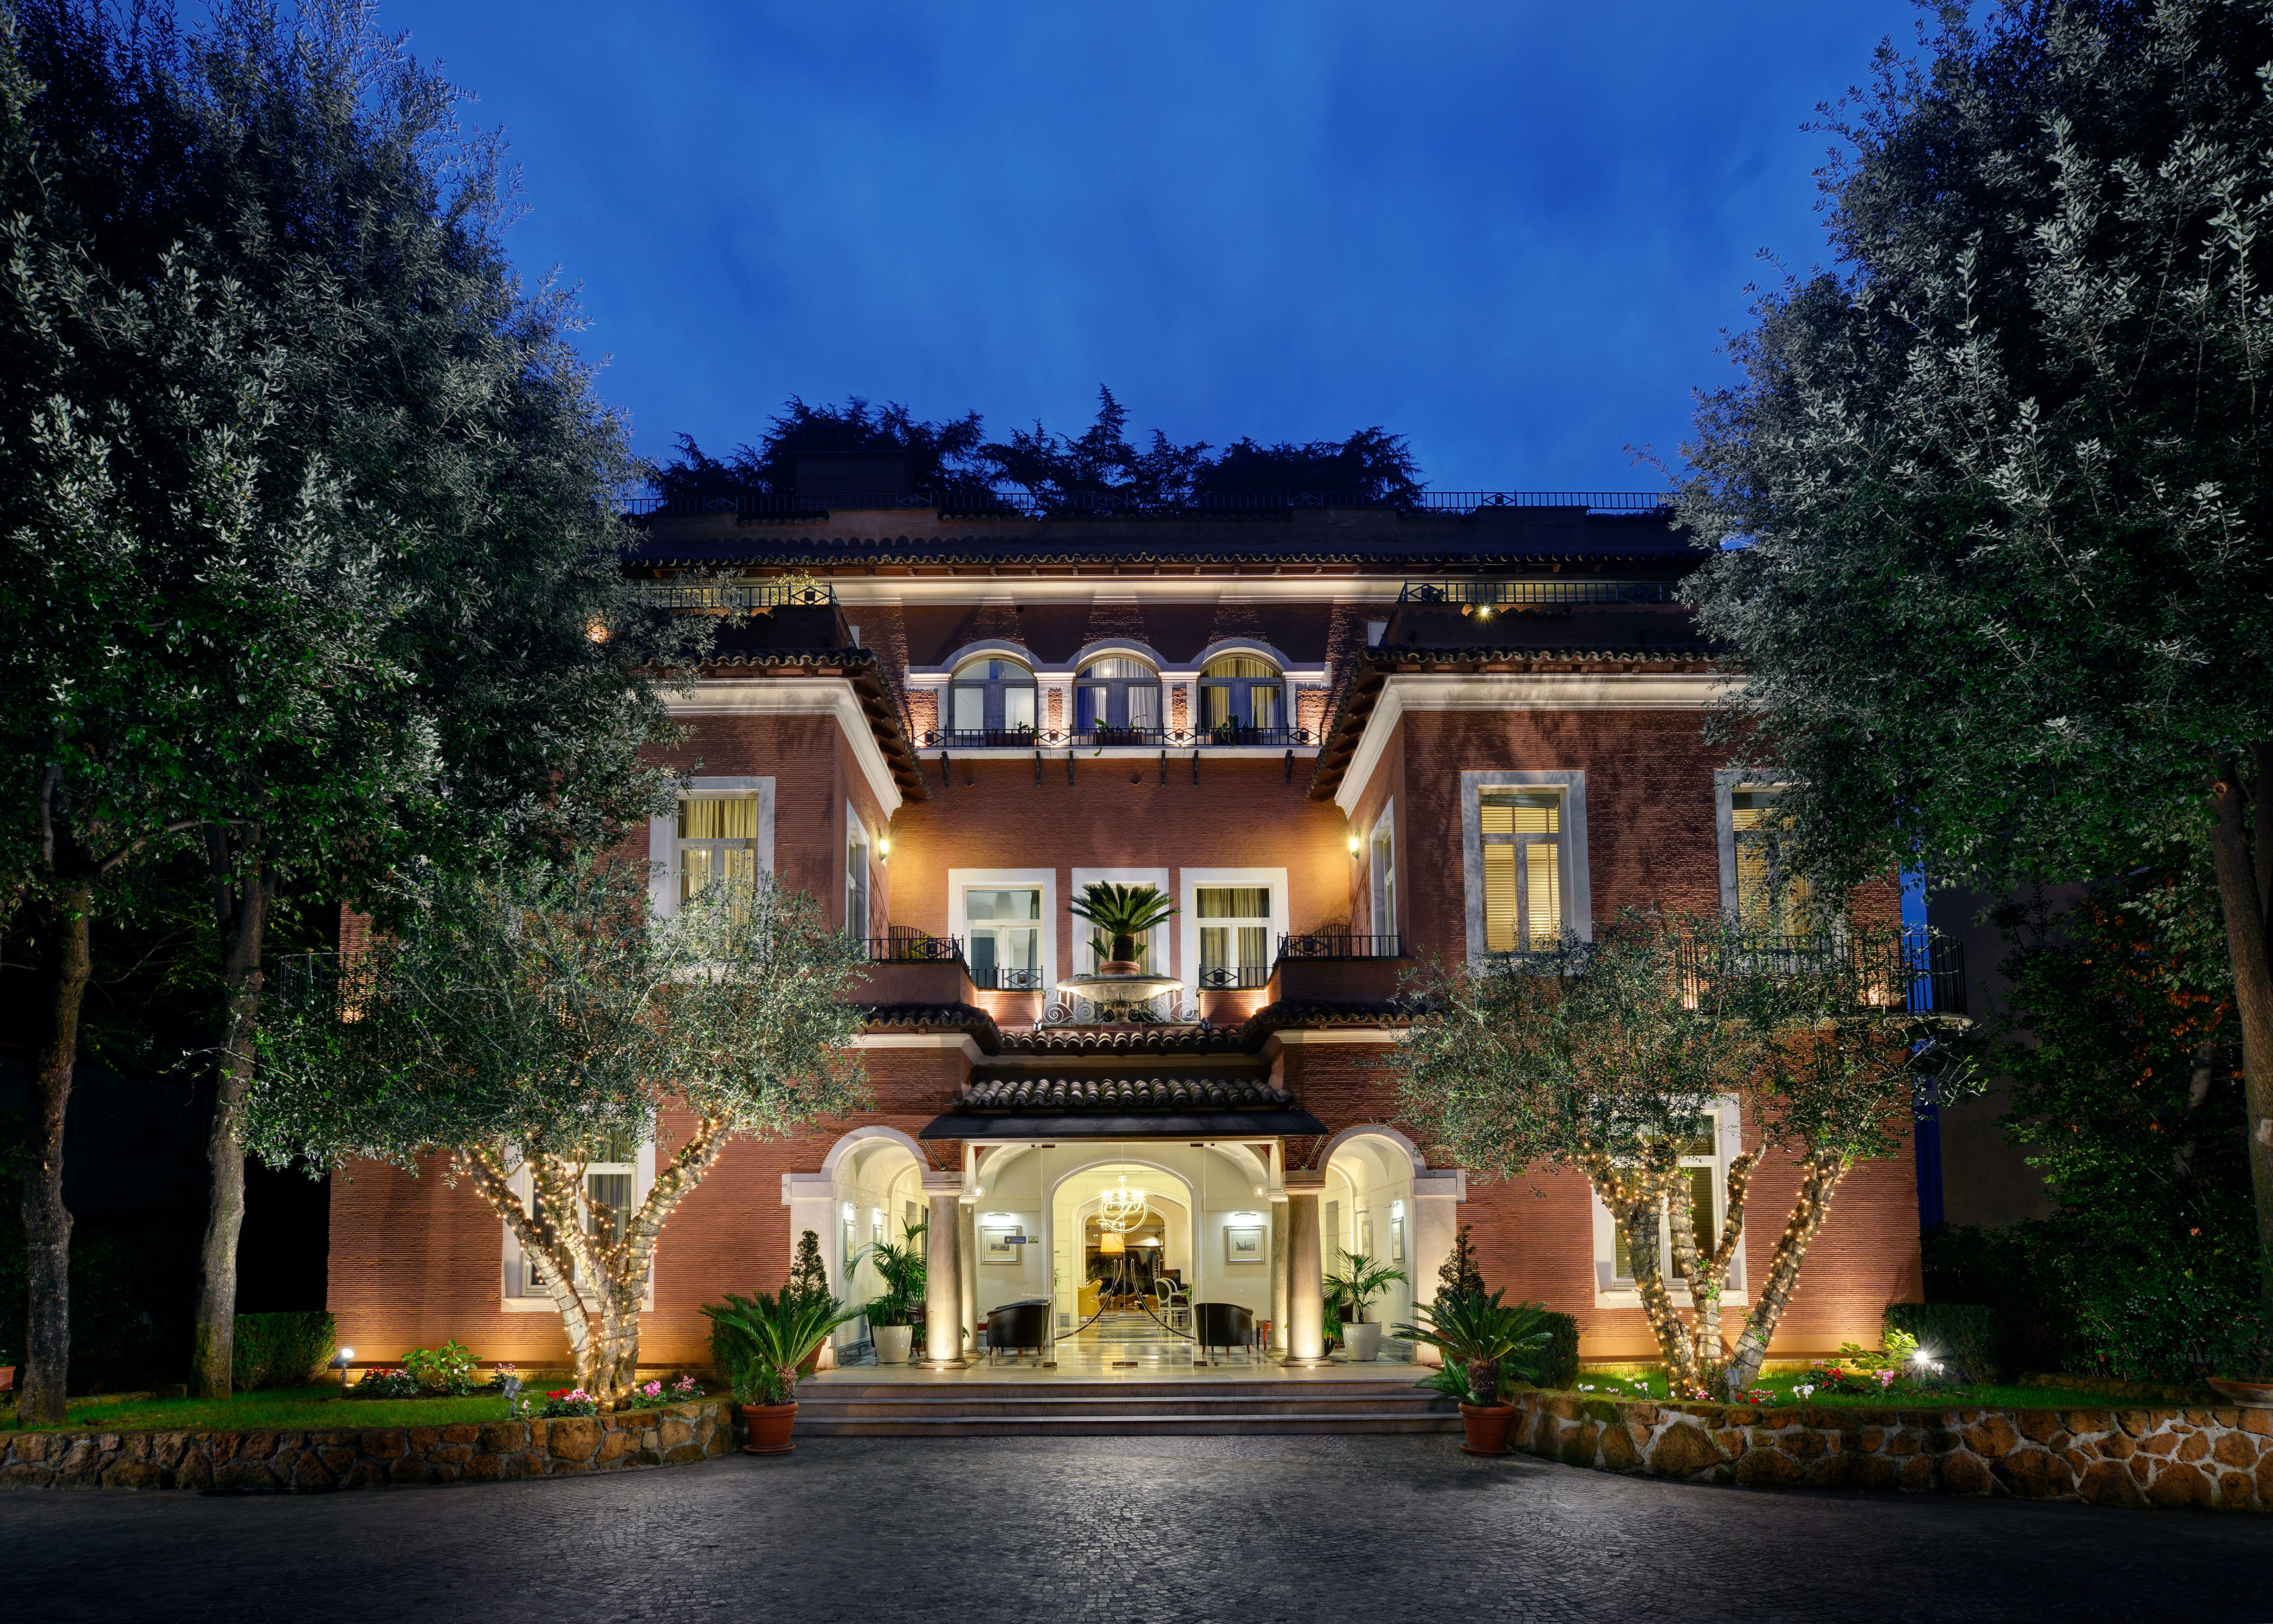 Exterior tree house home mansion building Architecture residential area landscape lighting Courtyard Villa Garden palace